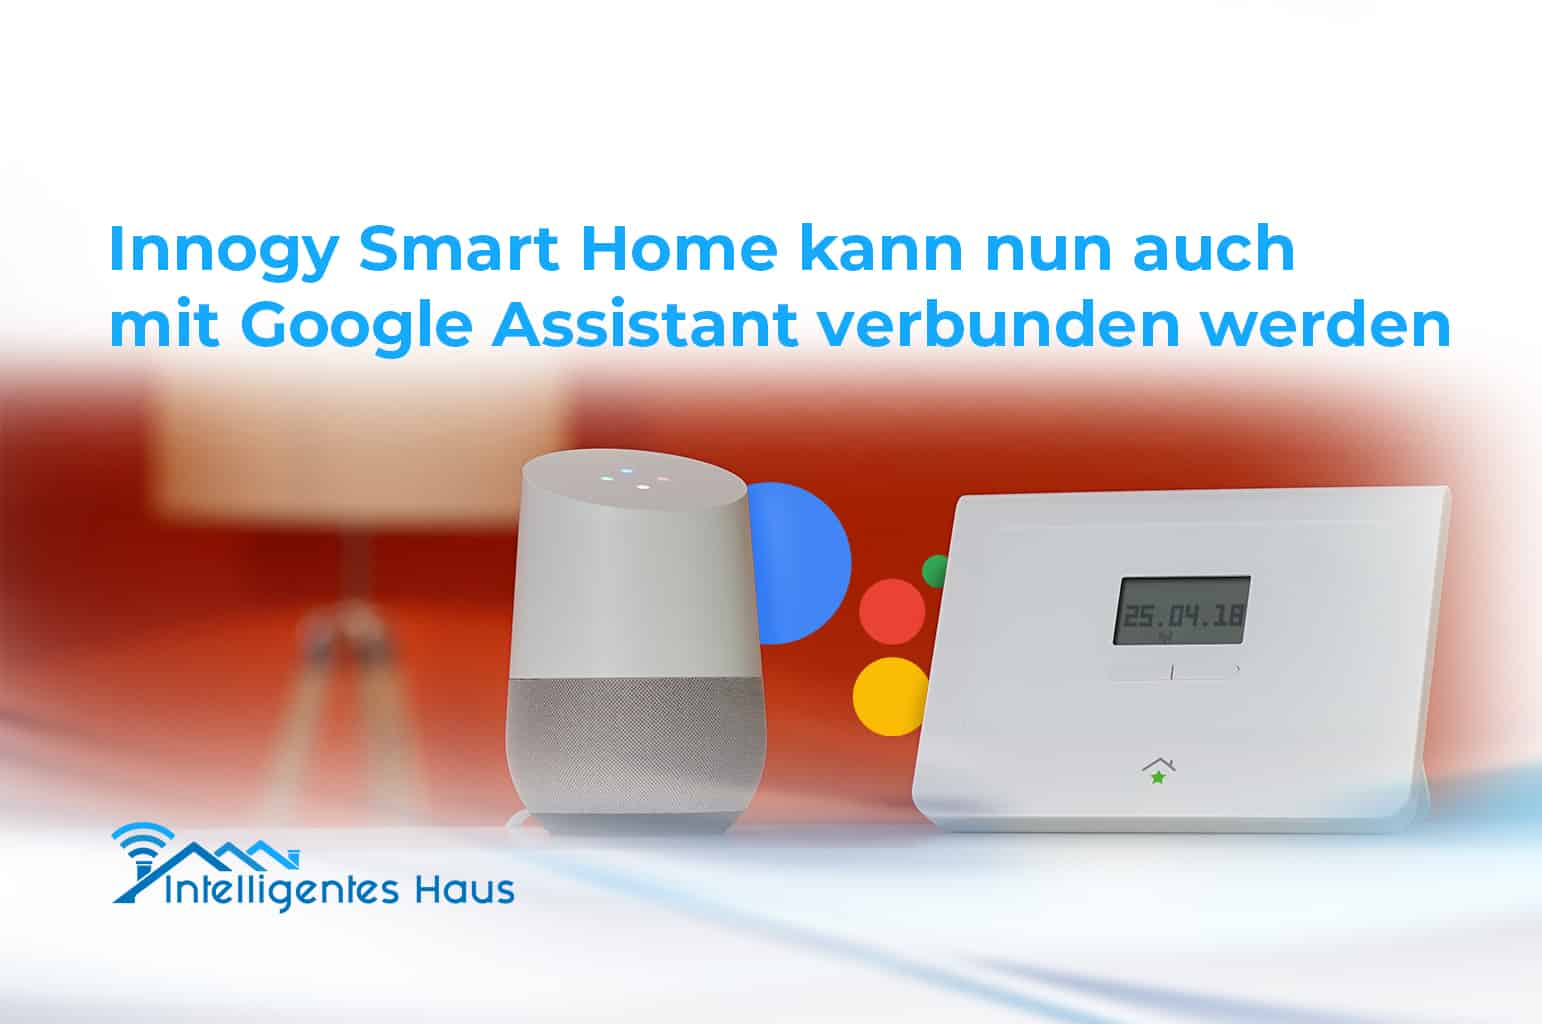 google assistant nun mit innogy smart home kompatibel. Black Bedroom Furniture Sets. Home Design Ideas